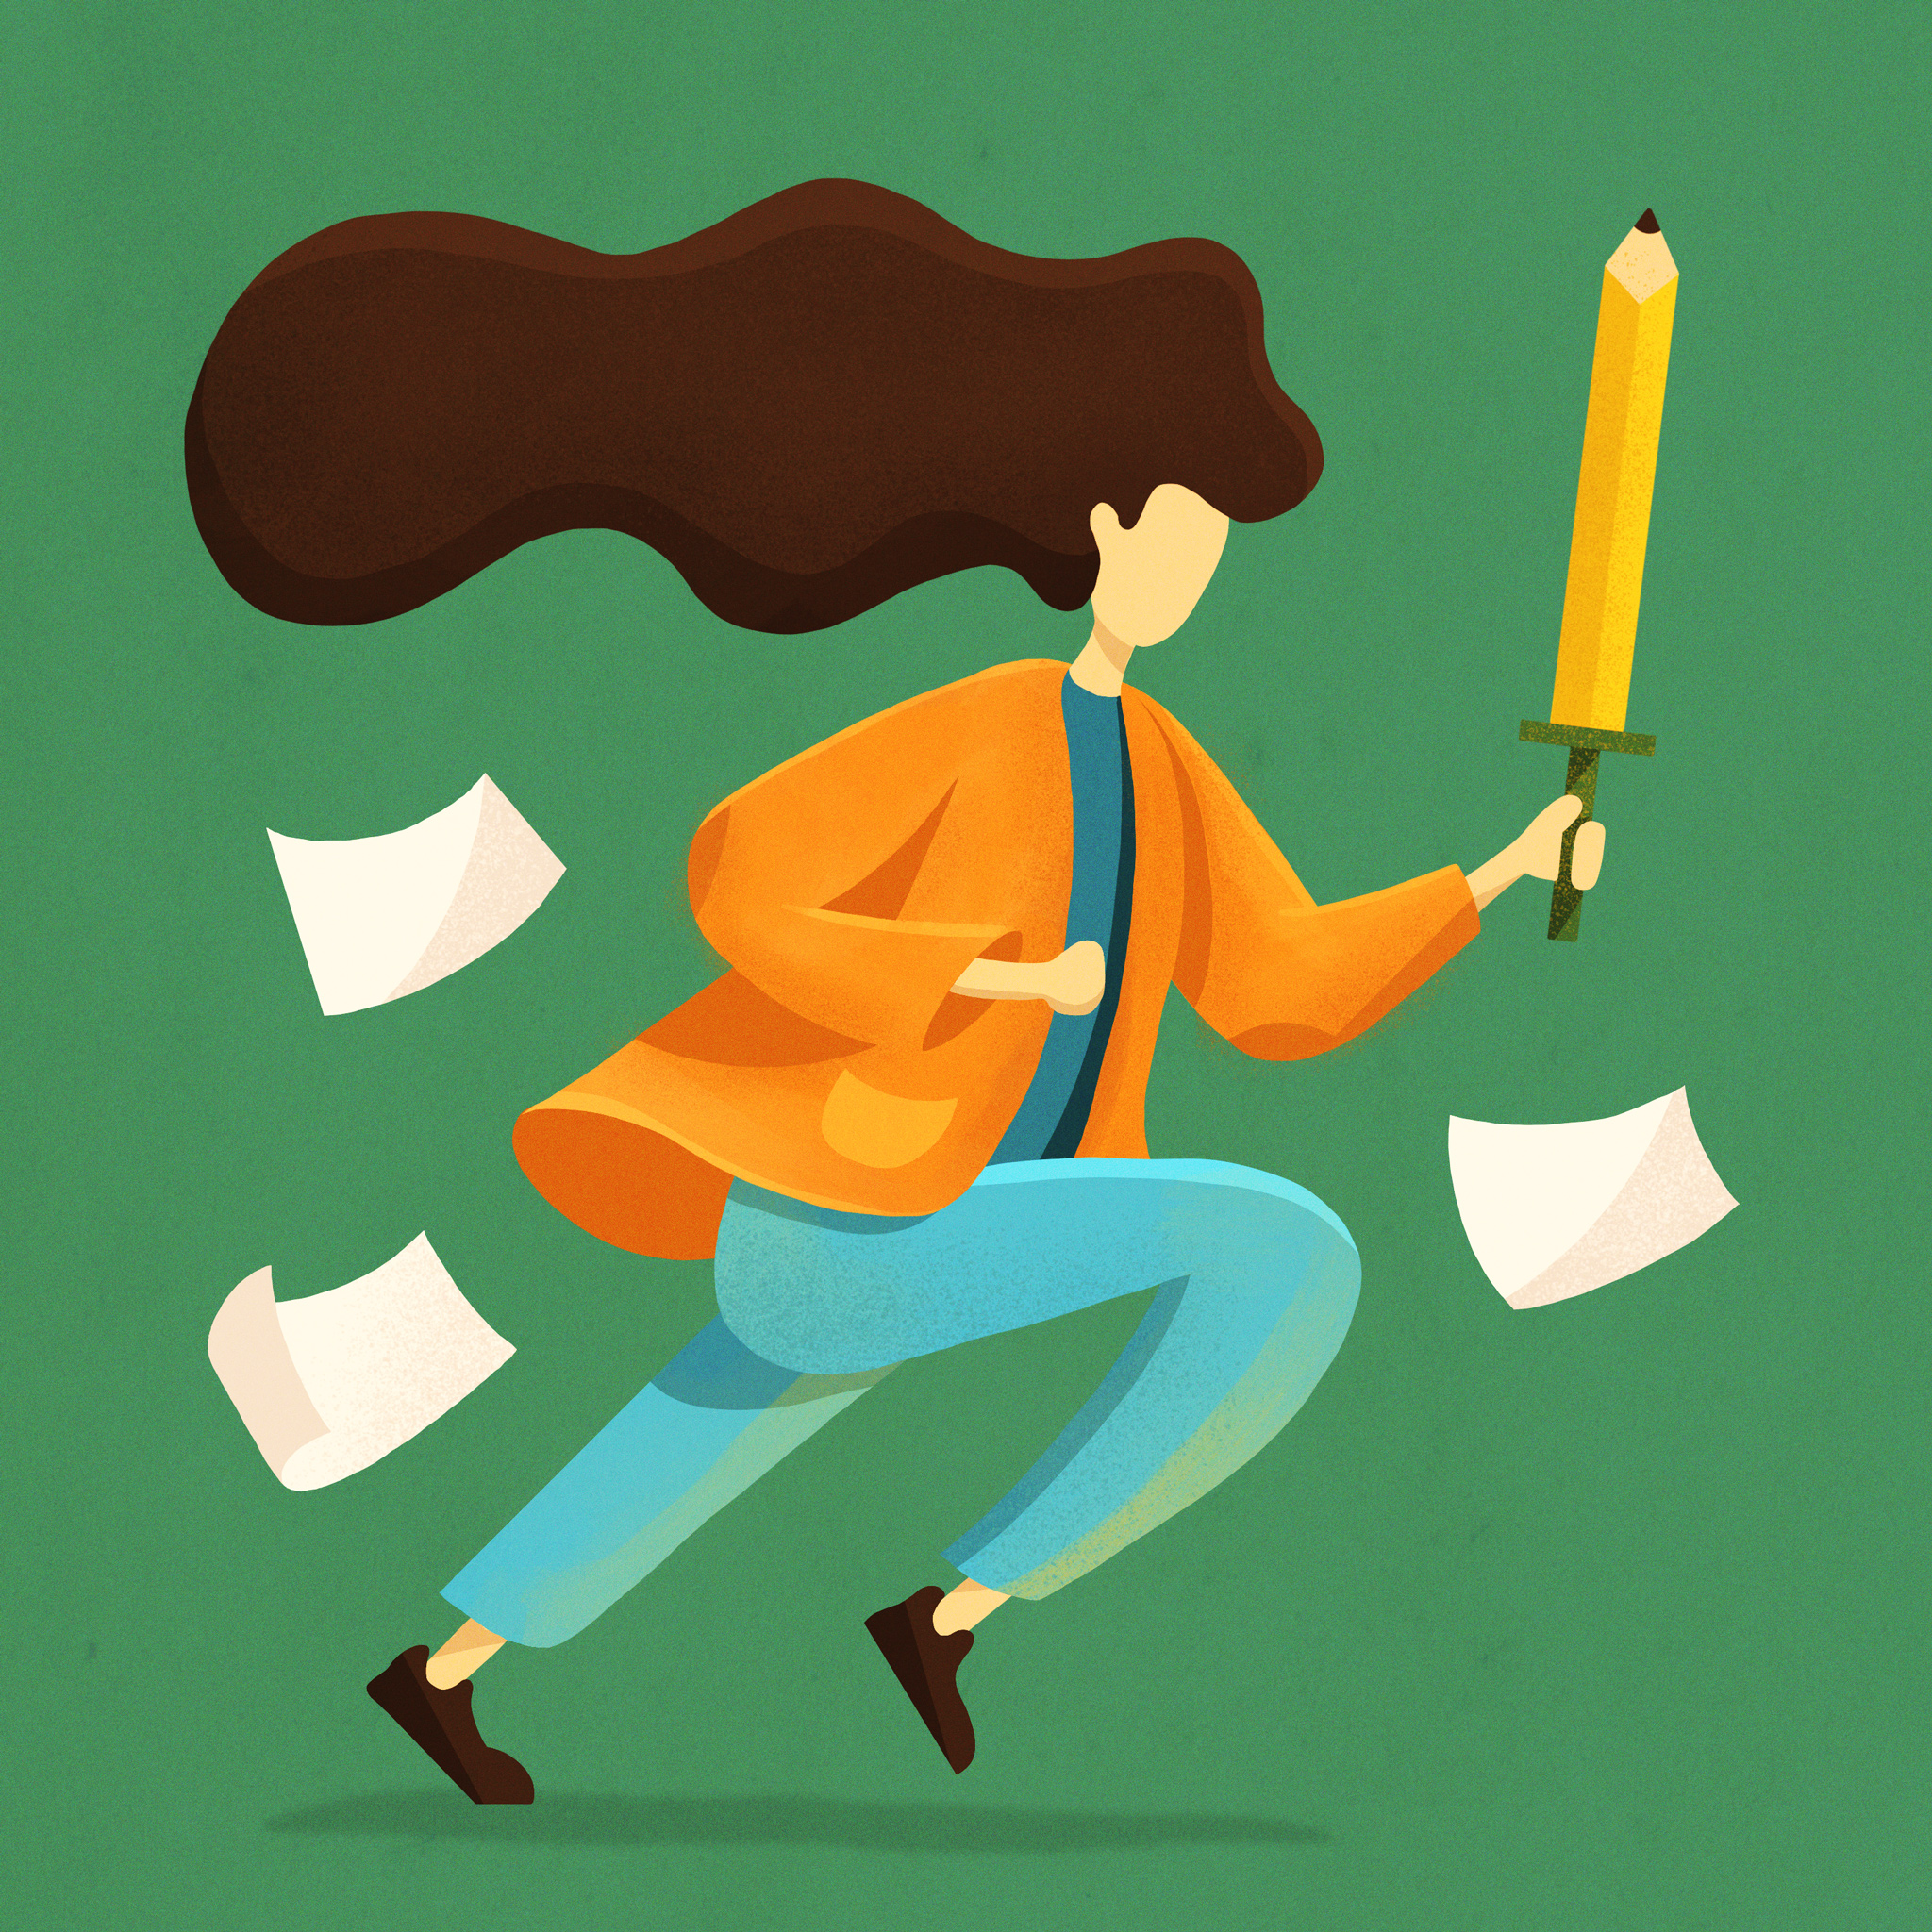 Character illustration of girl with long hair holding a pencil sword with paper flying around. Designer: Katie Cooper